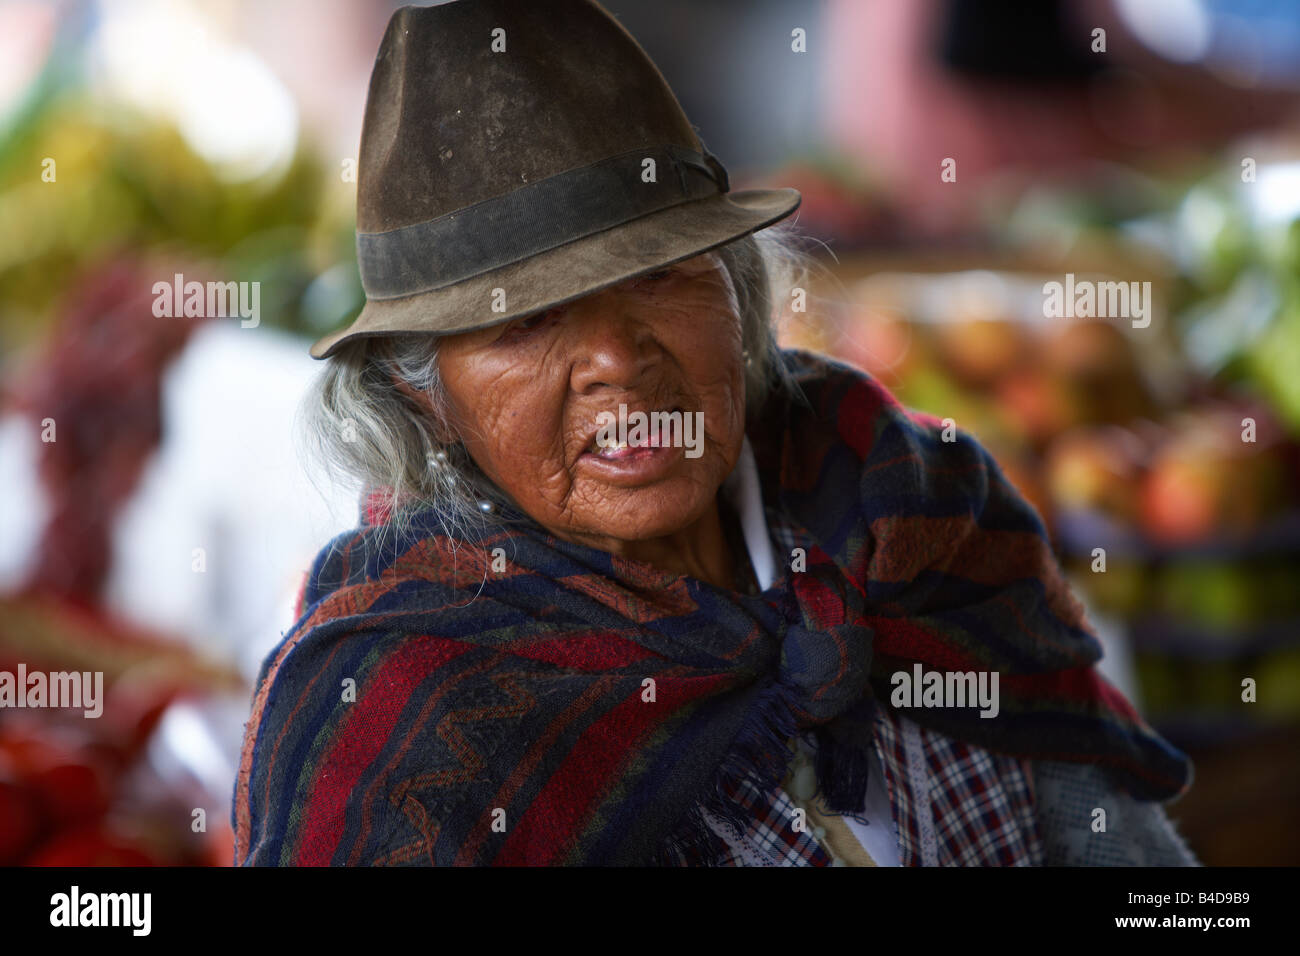 Elderly woman, Saquisili Market, Andes Mountains, Ecuador - Stock Image